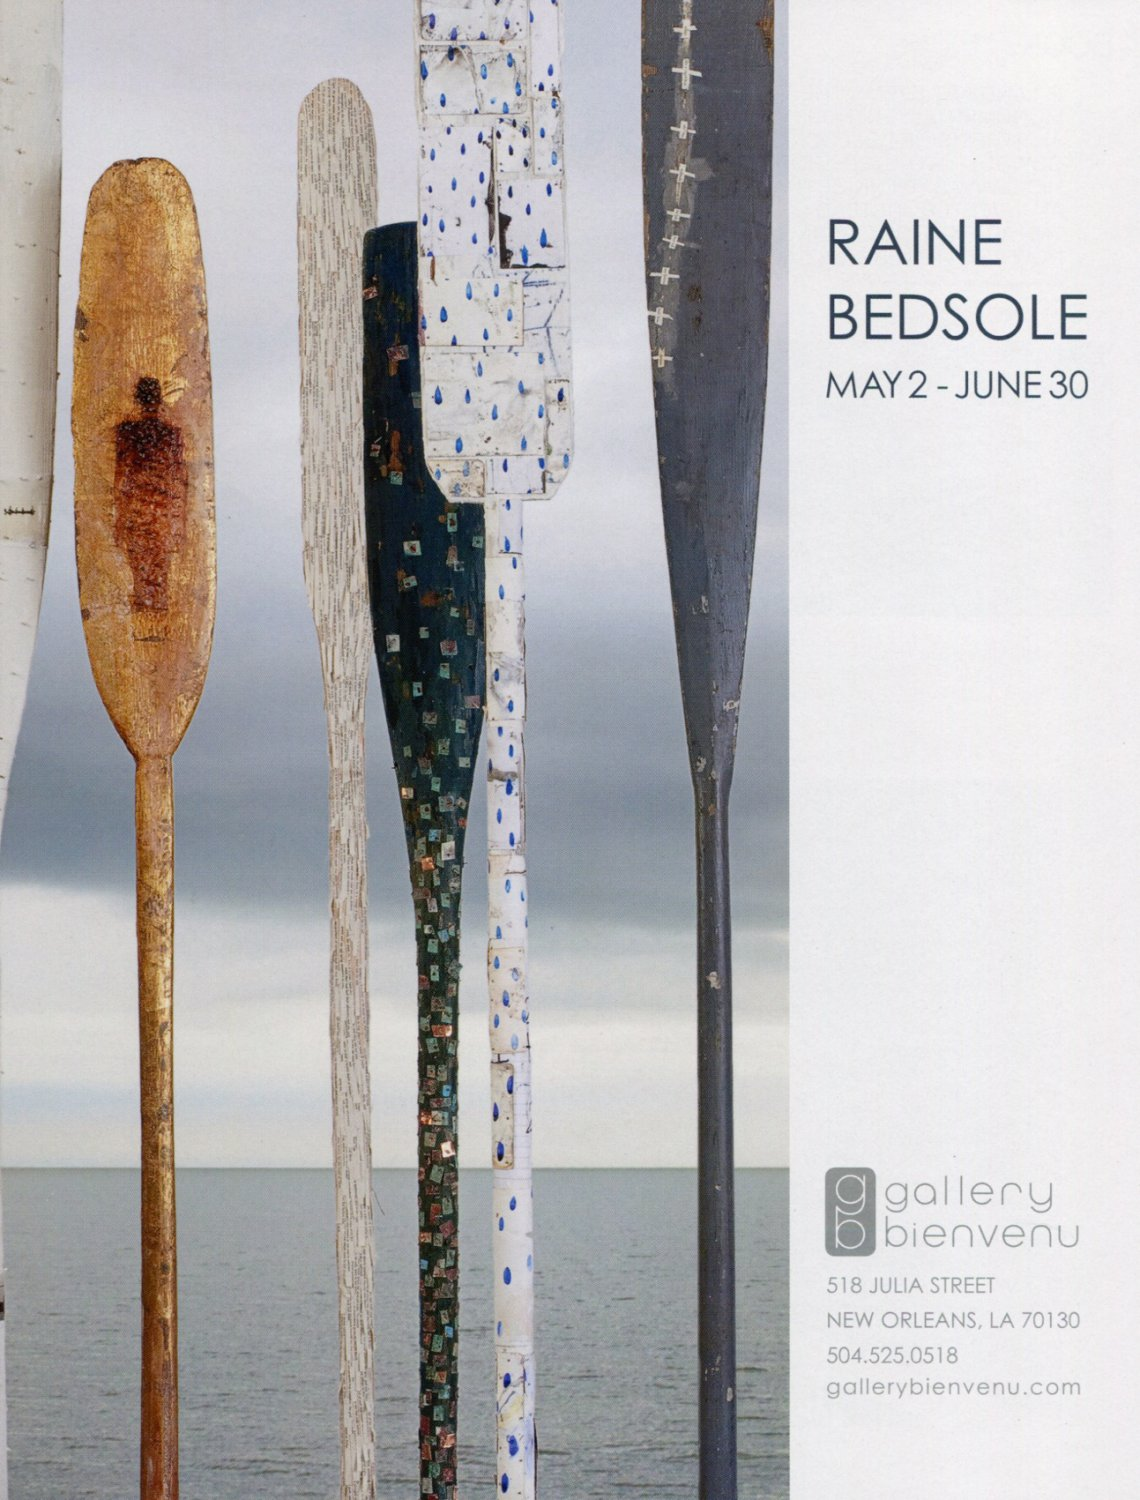 Raine Bedsole 2009 Art Exhibition Ad Advert Gallery Bienvenu New Orleans LA